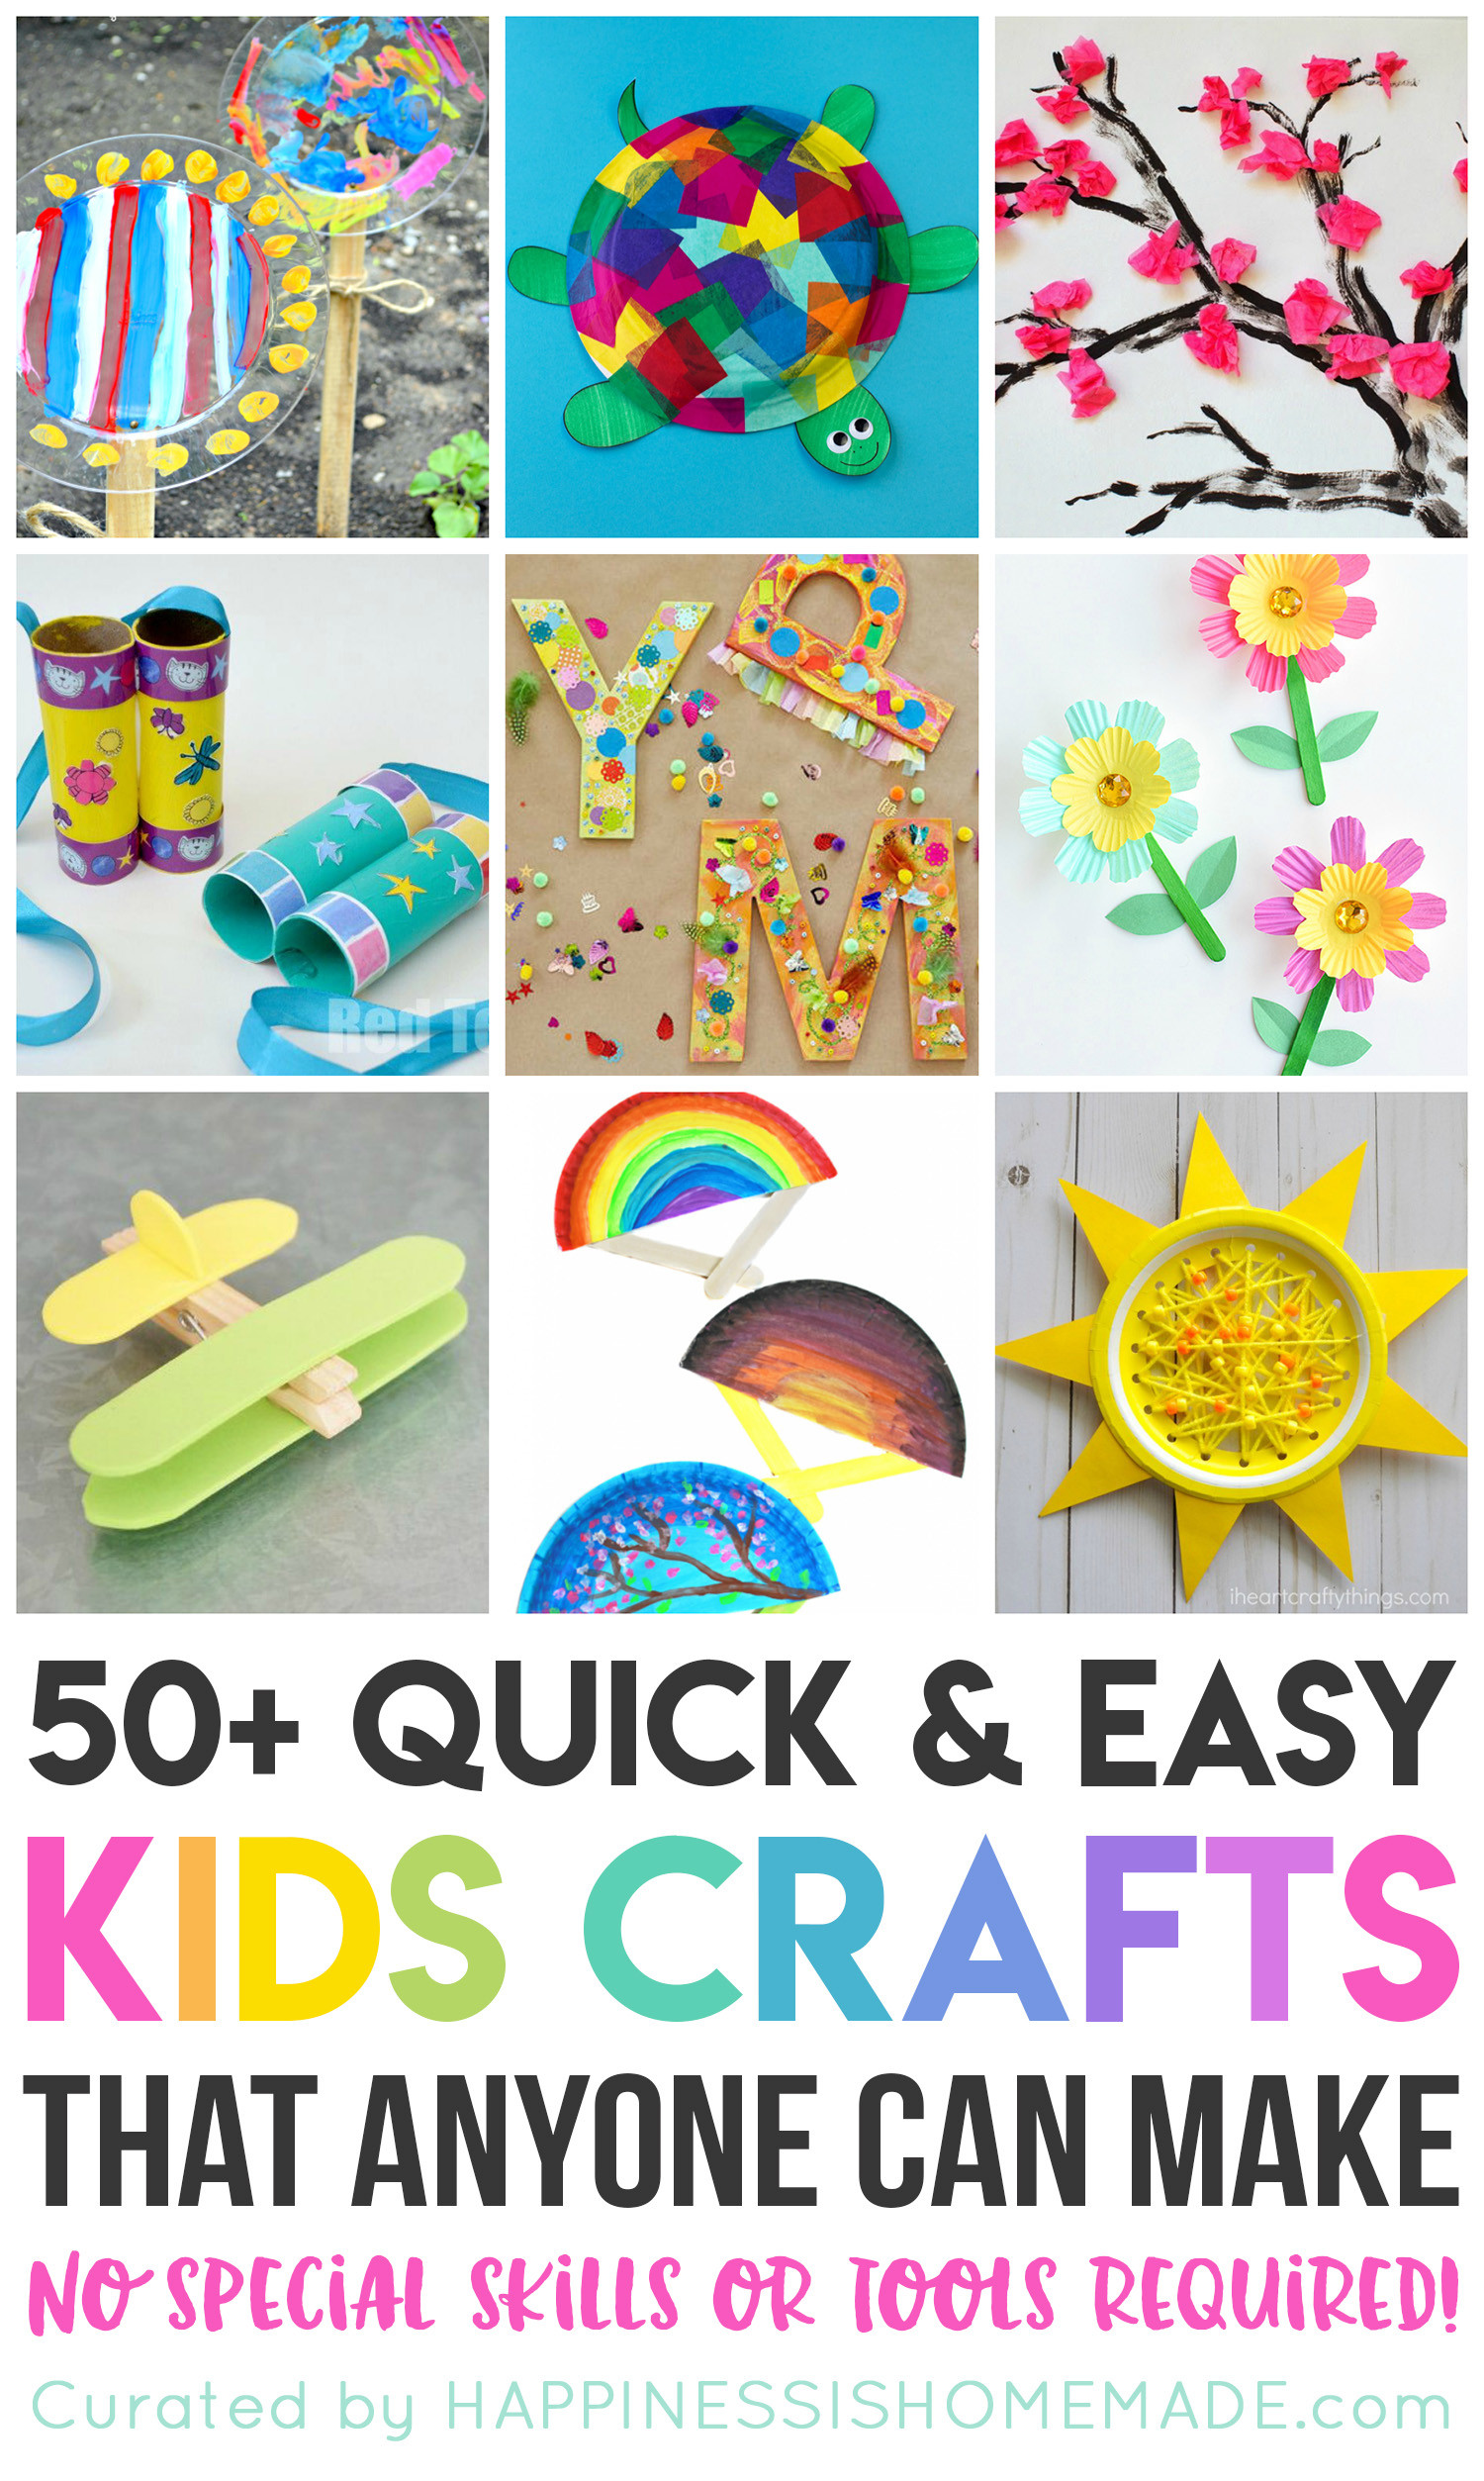 Best ideas about Simple Crafts For Toddlers . Save or Pin Quick & Easy Halloween Crafts for Kids Happiness is Homemade Now.